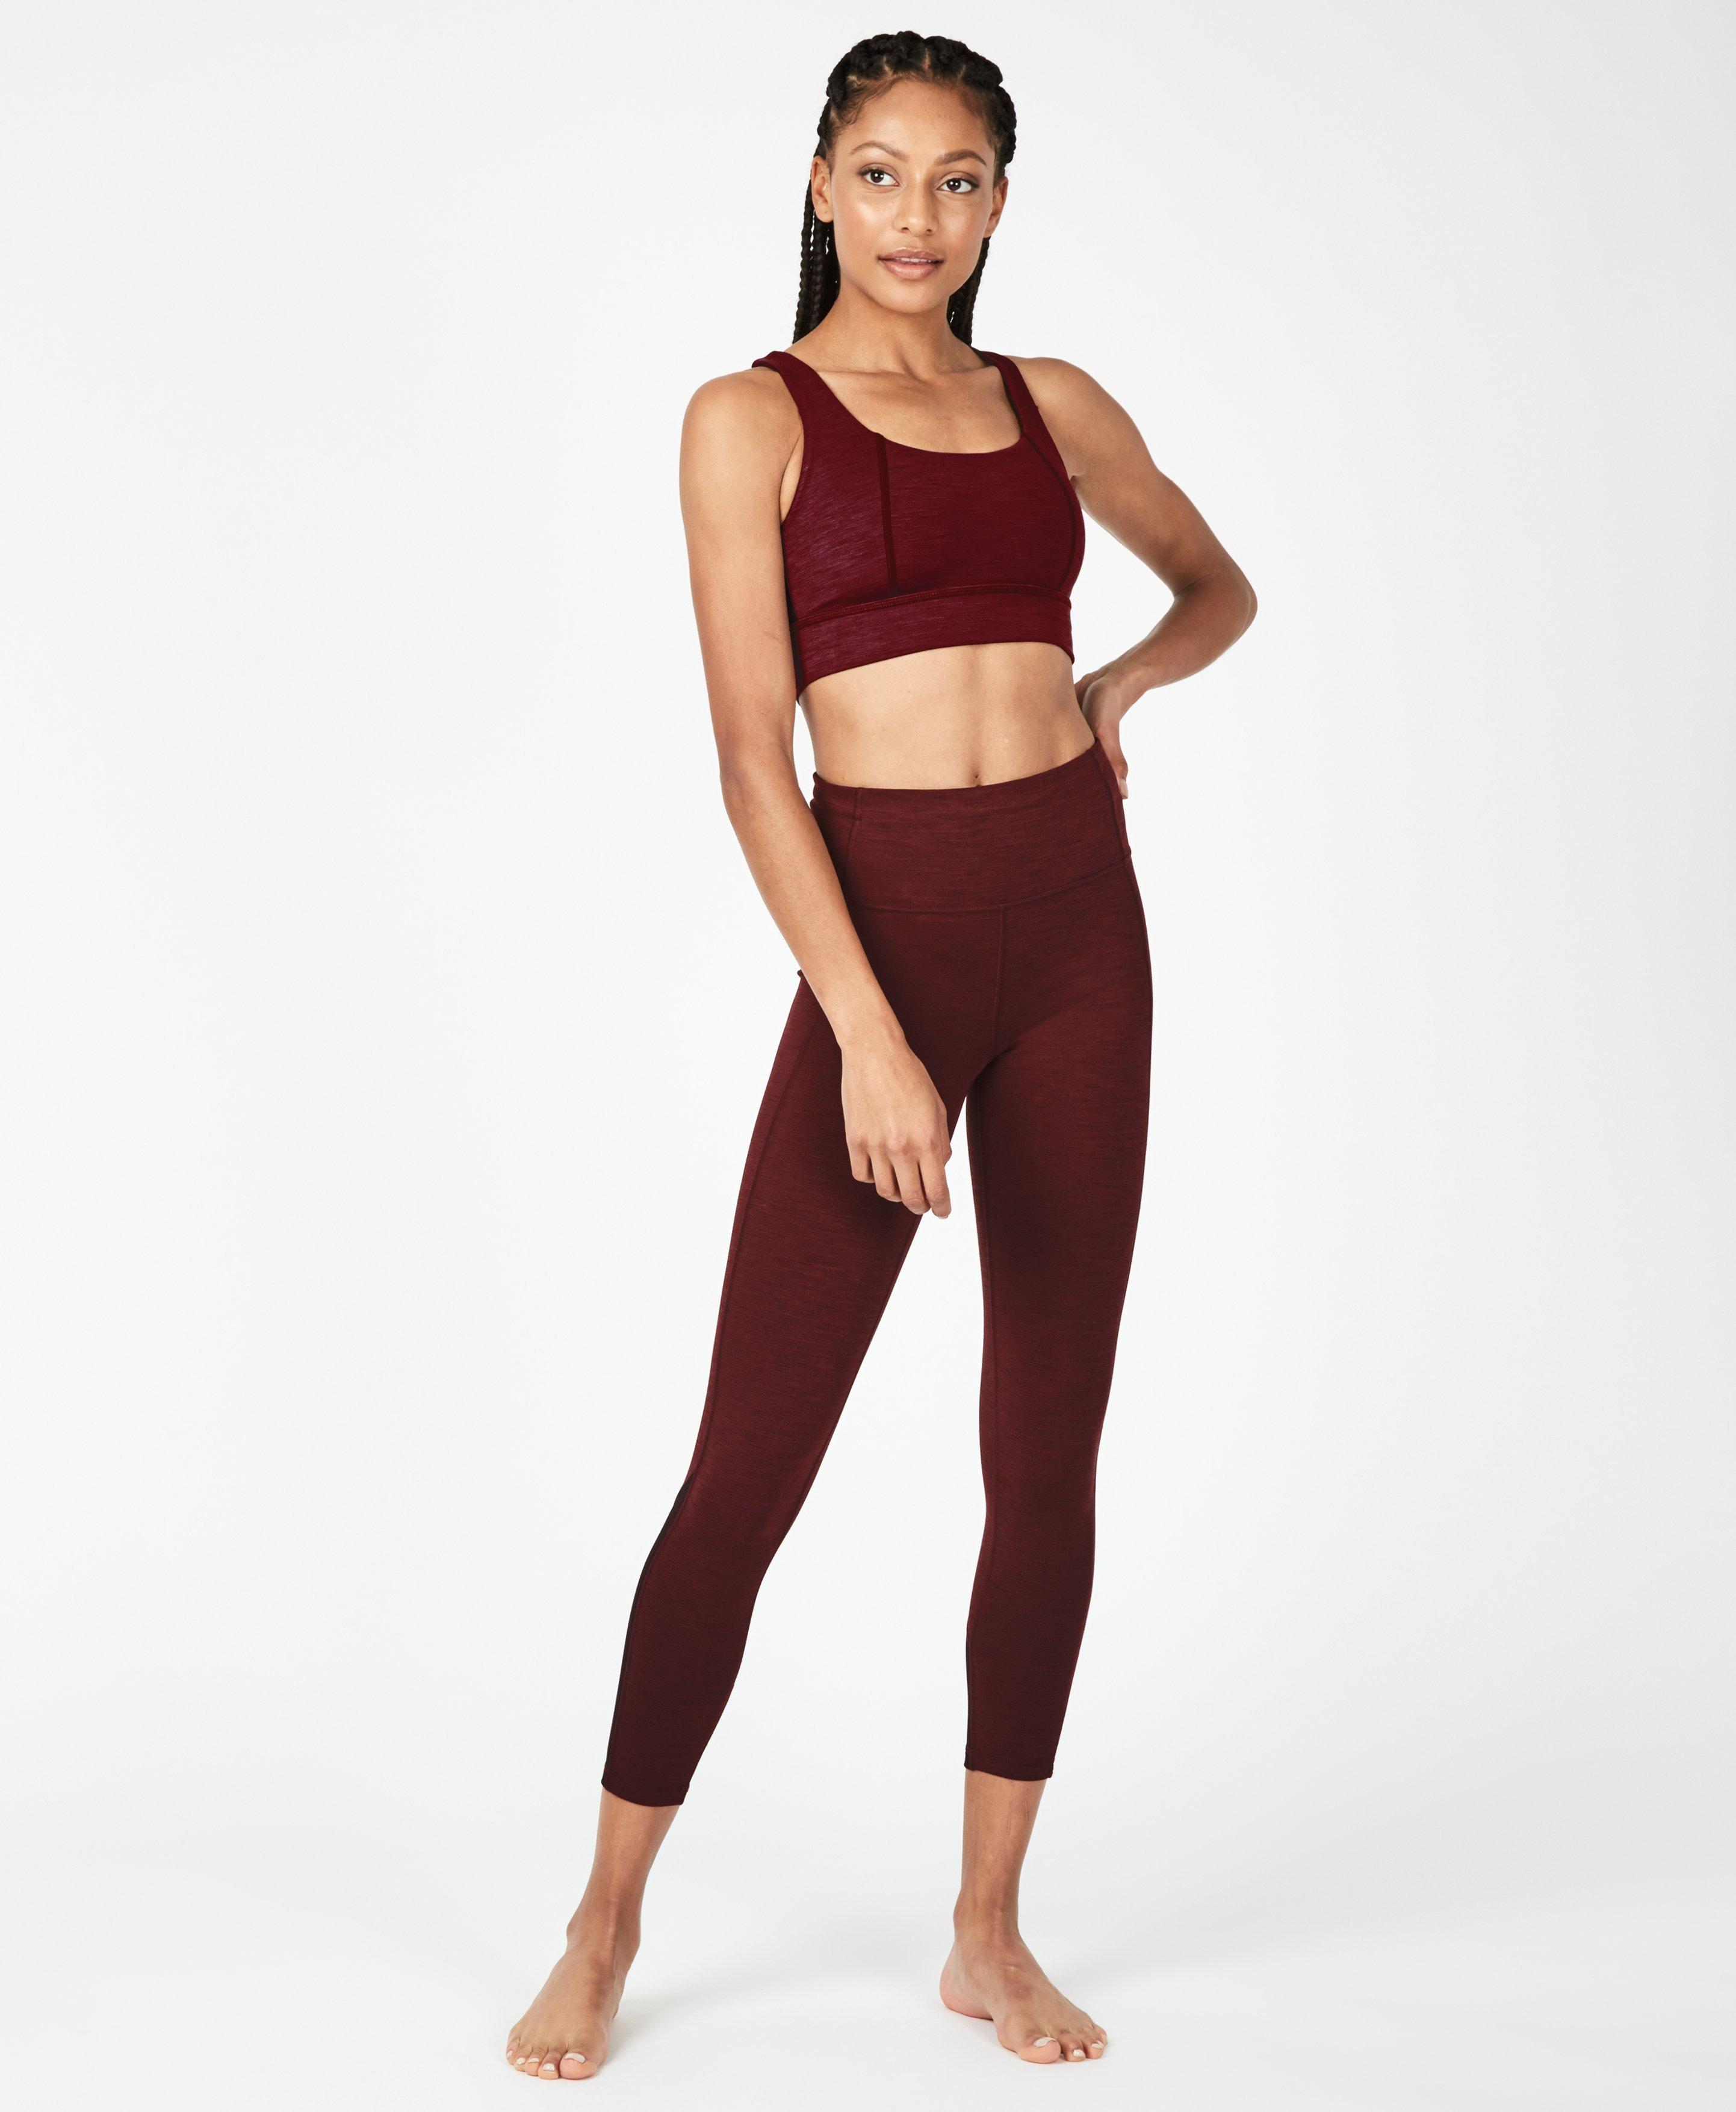 Super Sculpt Black Cherry Set,  | Sweaty Betty